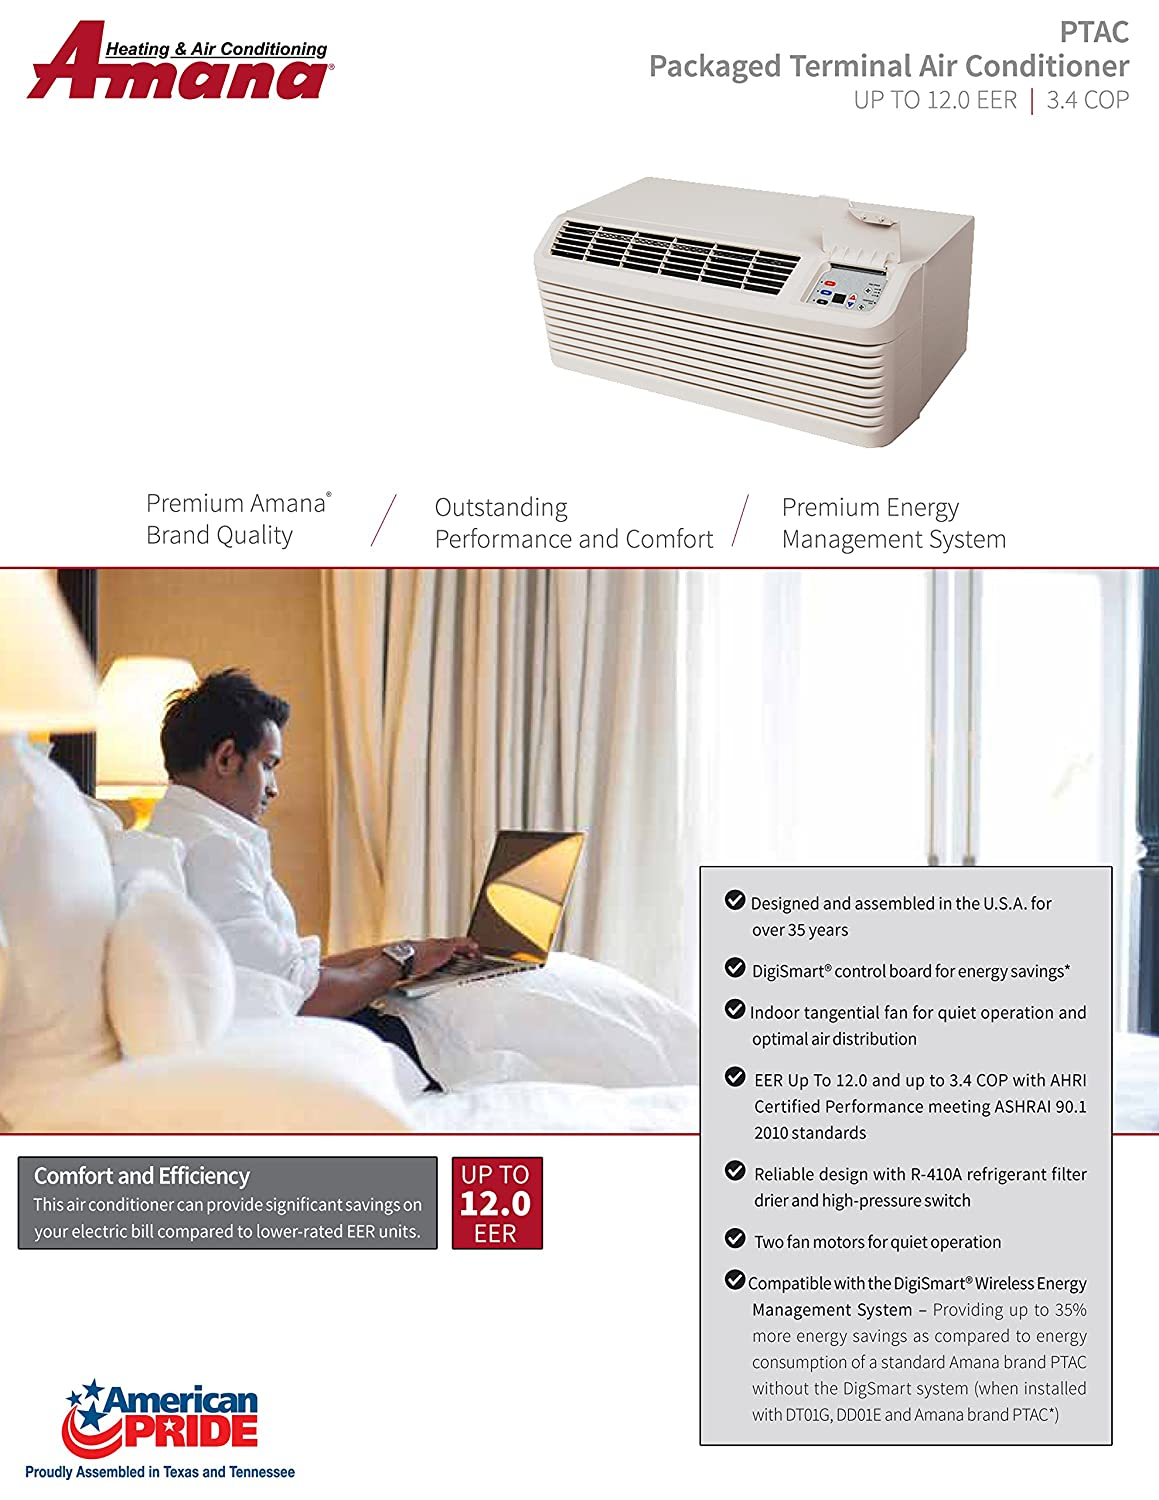 Amana Ptac 15000 Btu Heat Pump Unit 35kw Back Up Air Conditioning Circuit Board Cost Conditioner Heater Pth153g35axxx Home Kitchen